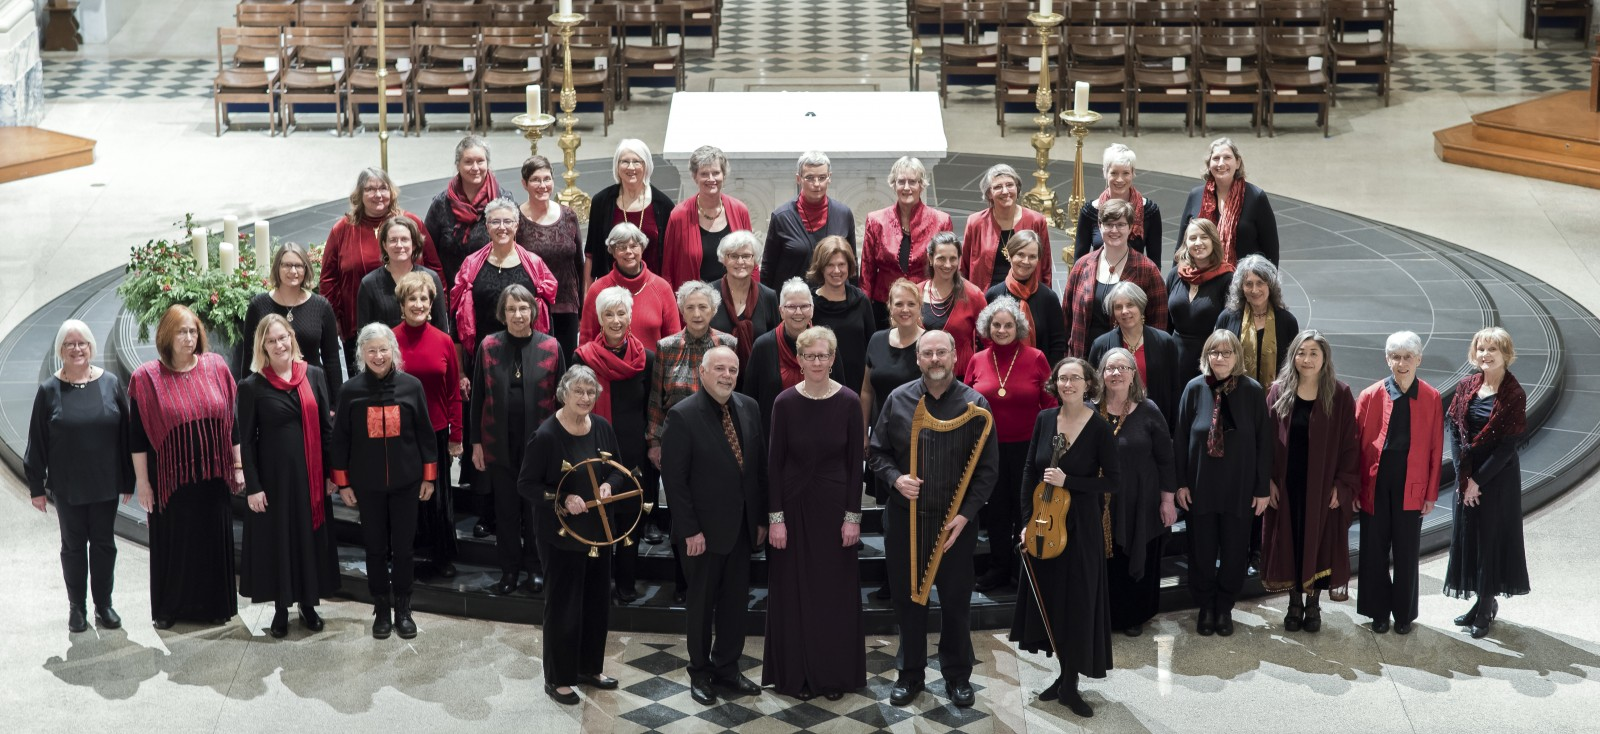 Medieval Women's Choir. Medieval Women's Choir at St. James. All photos by Ailisa Newhall.